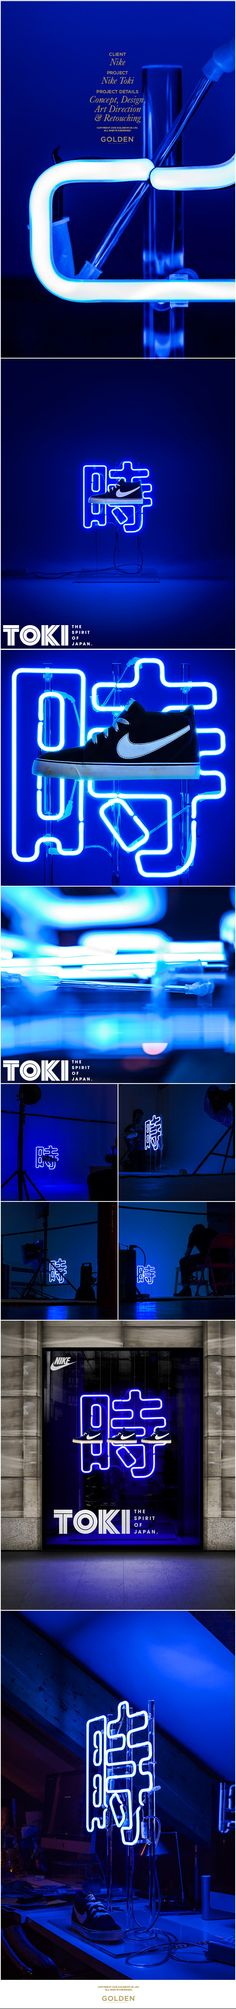 Nike Toki by Golden, via Behance Shoe Display, Display Design, Nike Outfits, Champs, Nike Retail, Nike Neon, Nike Air, Neon Design, Retail Interior